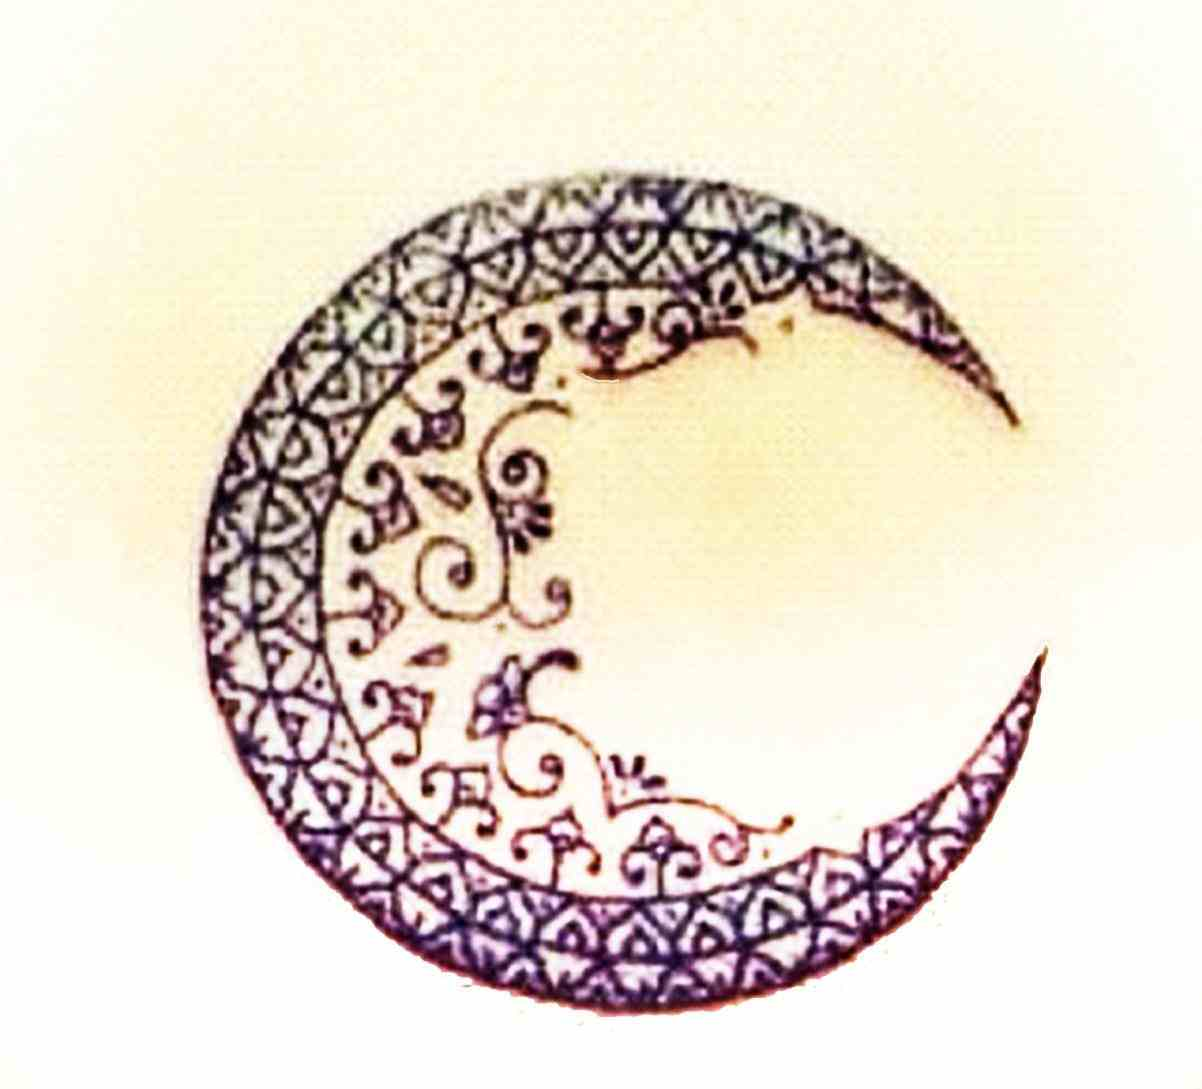 crescent moon drawing tumblr.